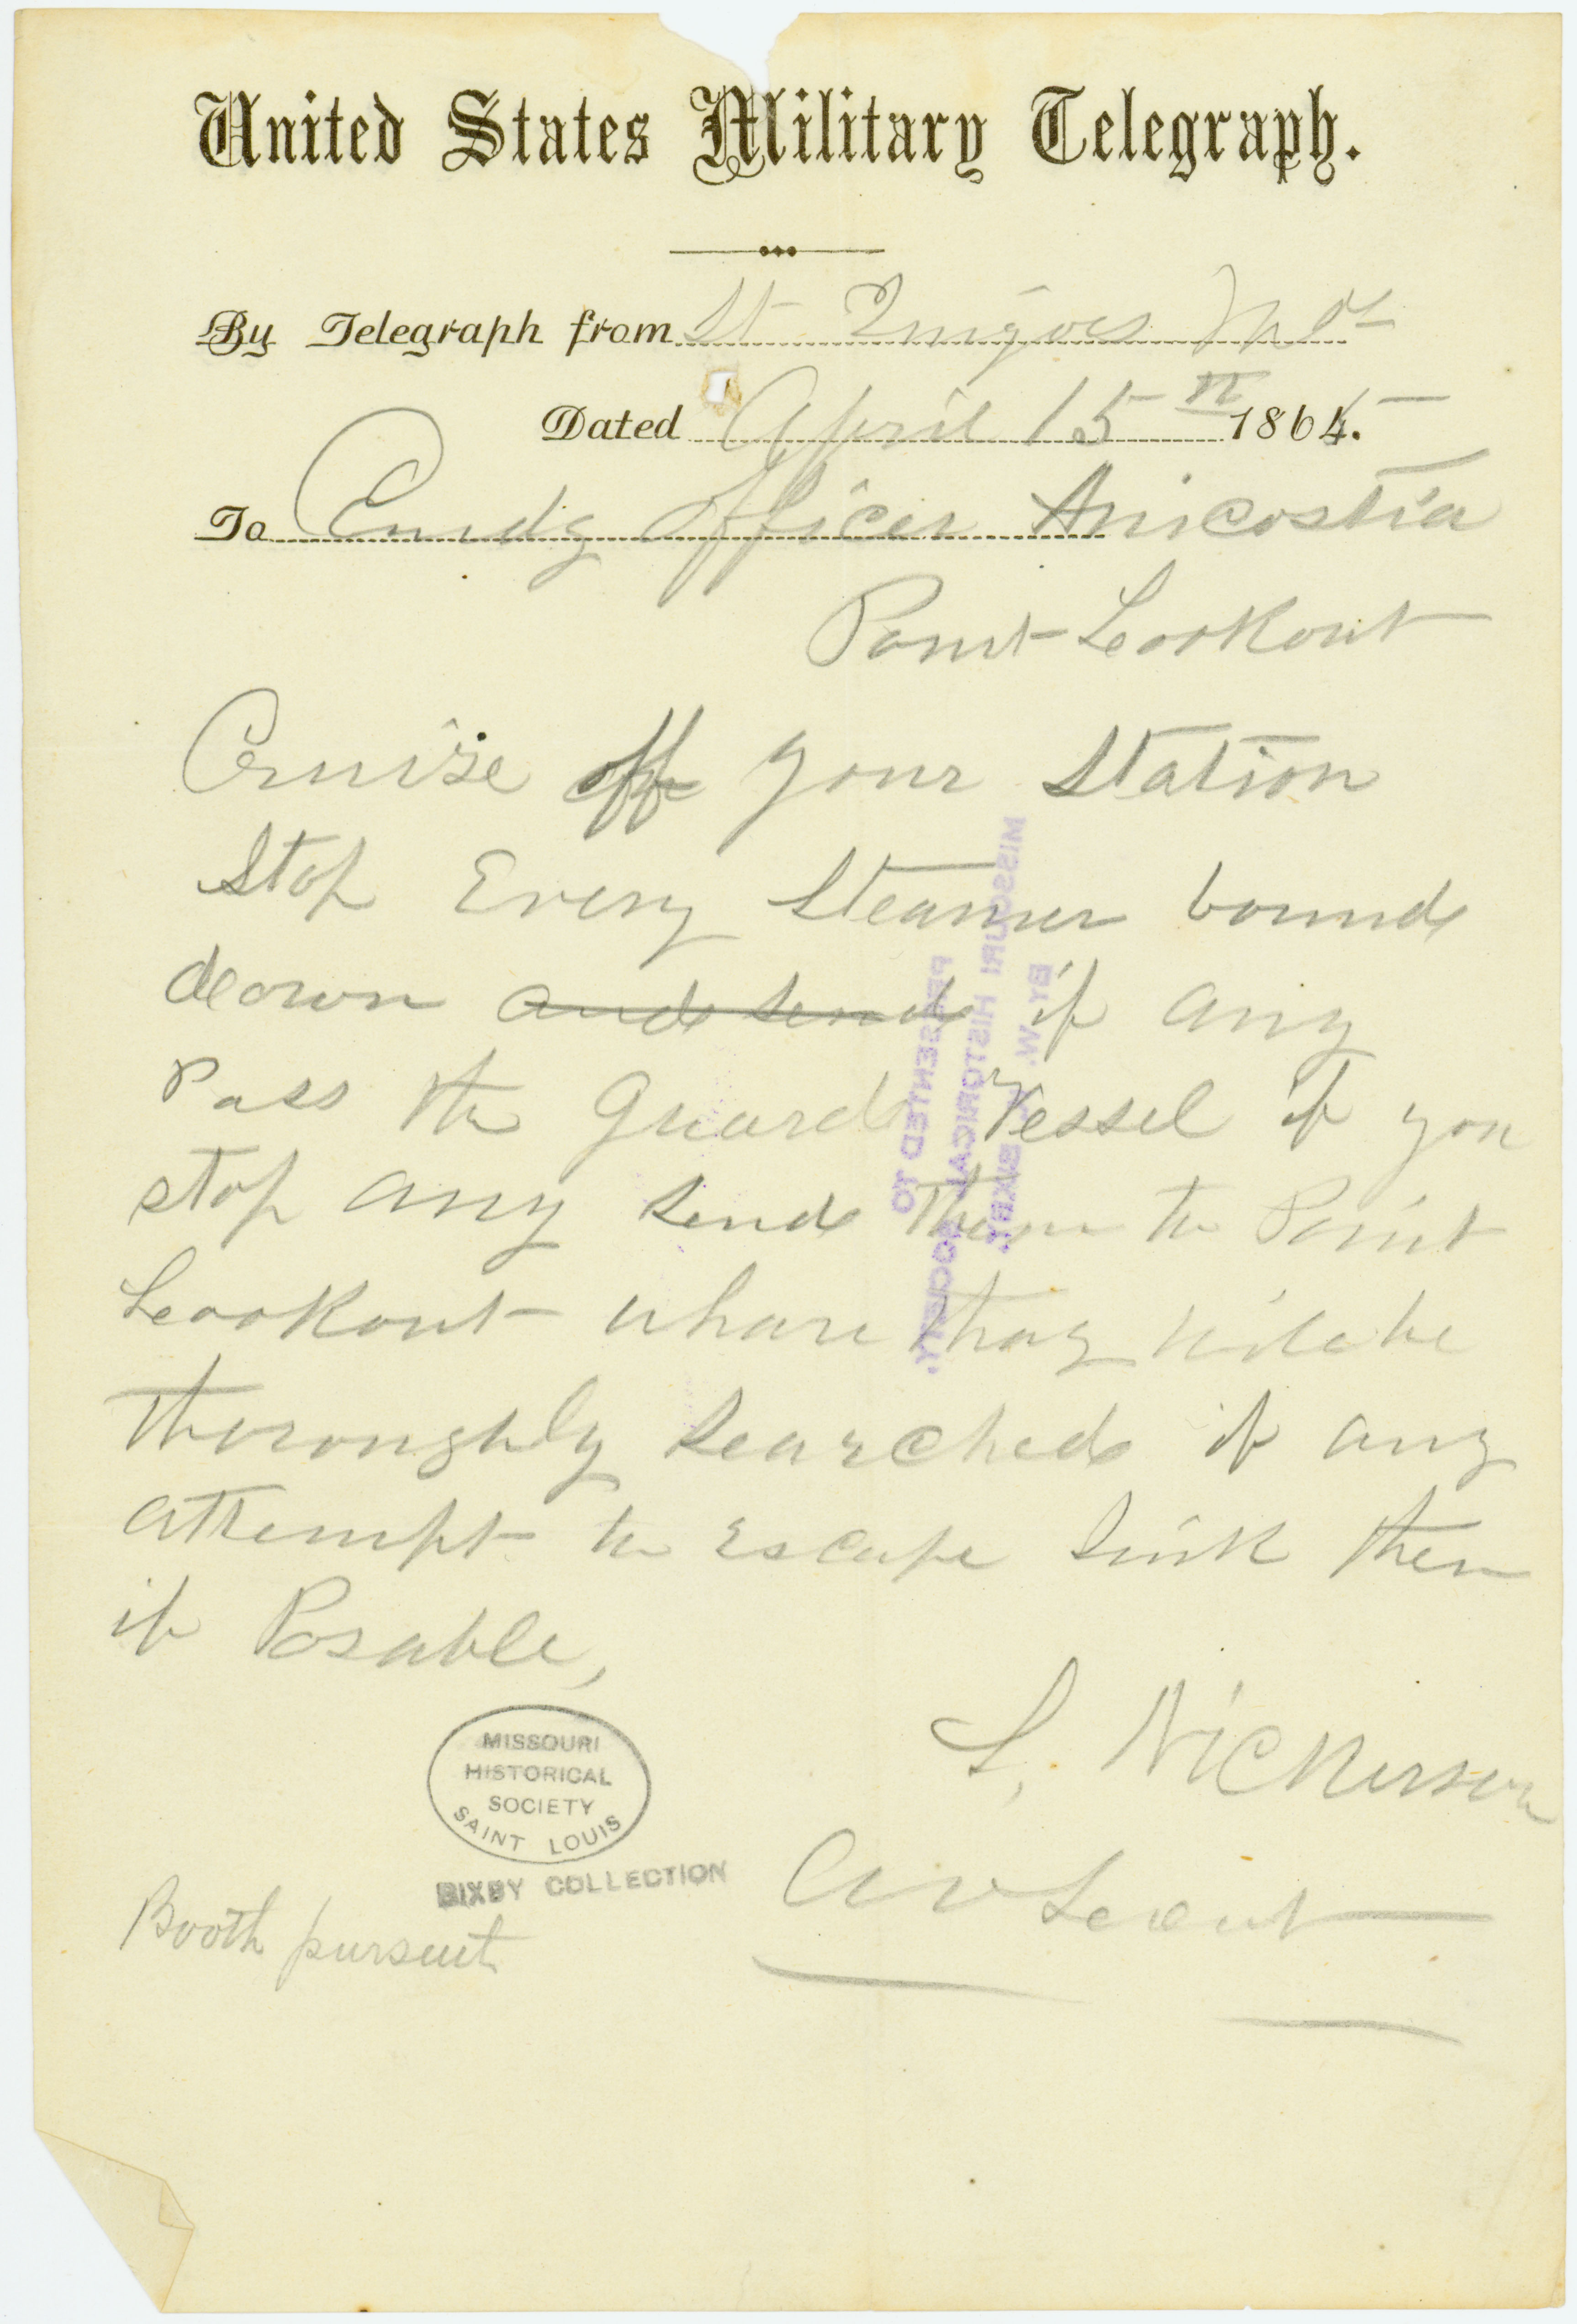 United States Military Telegraph of S. Nickerson, St. Inigoes, Md., to Comdg. Officer Anacostia, Point Lookout, April 15, 1865